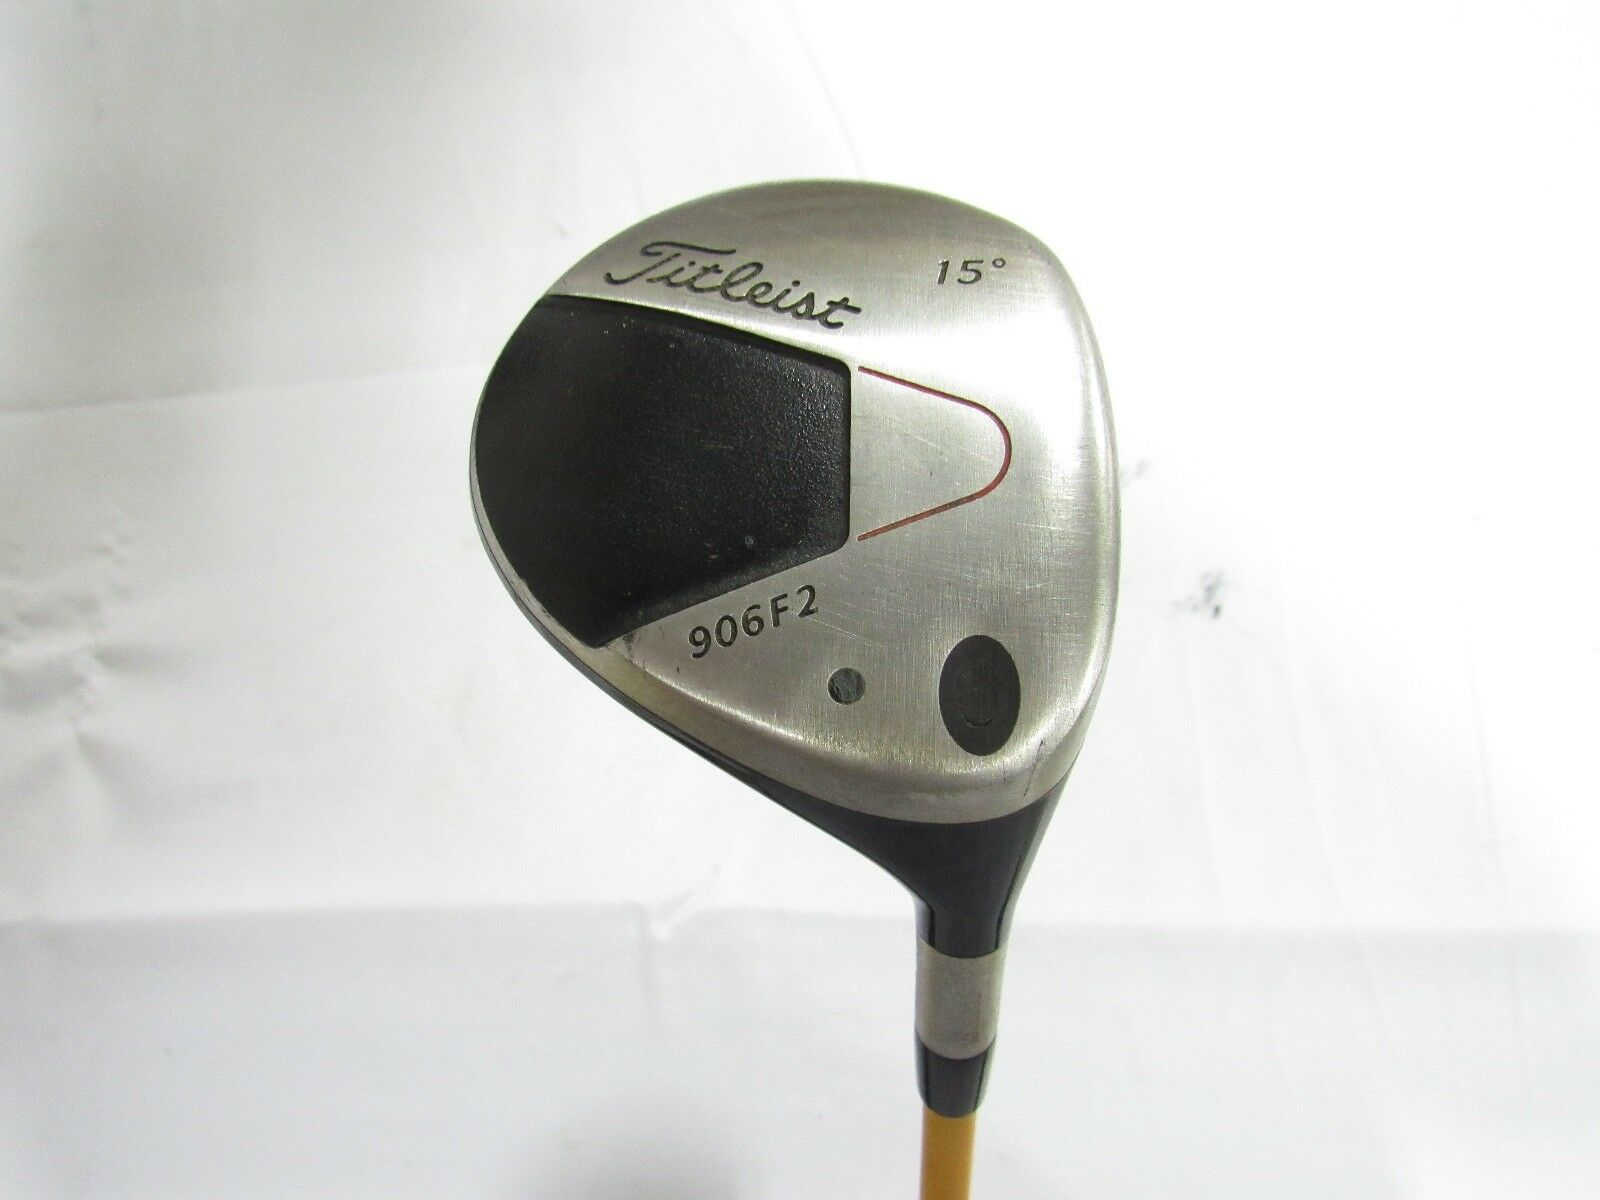 Usado RH Titleist 906F2  Fairway 15  Proforce oro V2 Grafito Stiff Flex  para barato